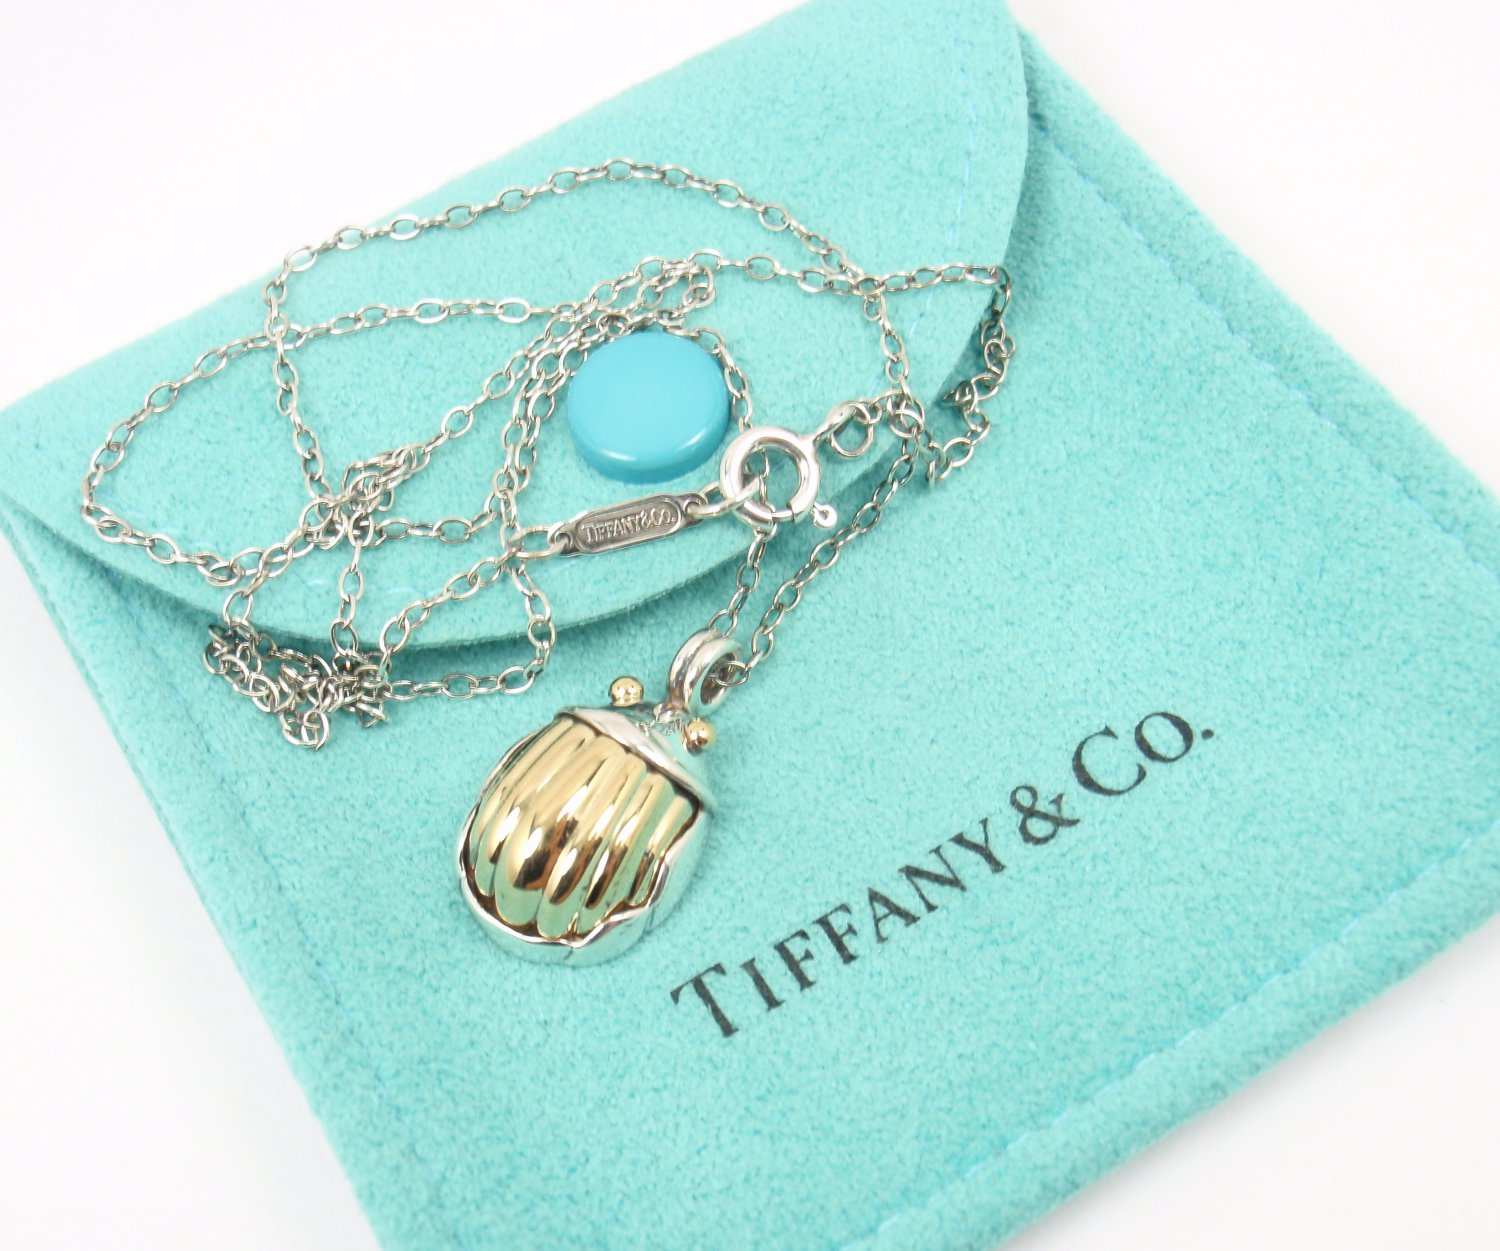 Rare Vintage 1993 Tiffany & Co Sterling Silver 18K Gold Scarab Pendant Necklace w/pouch